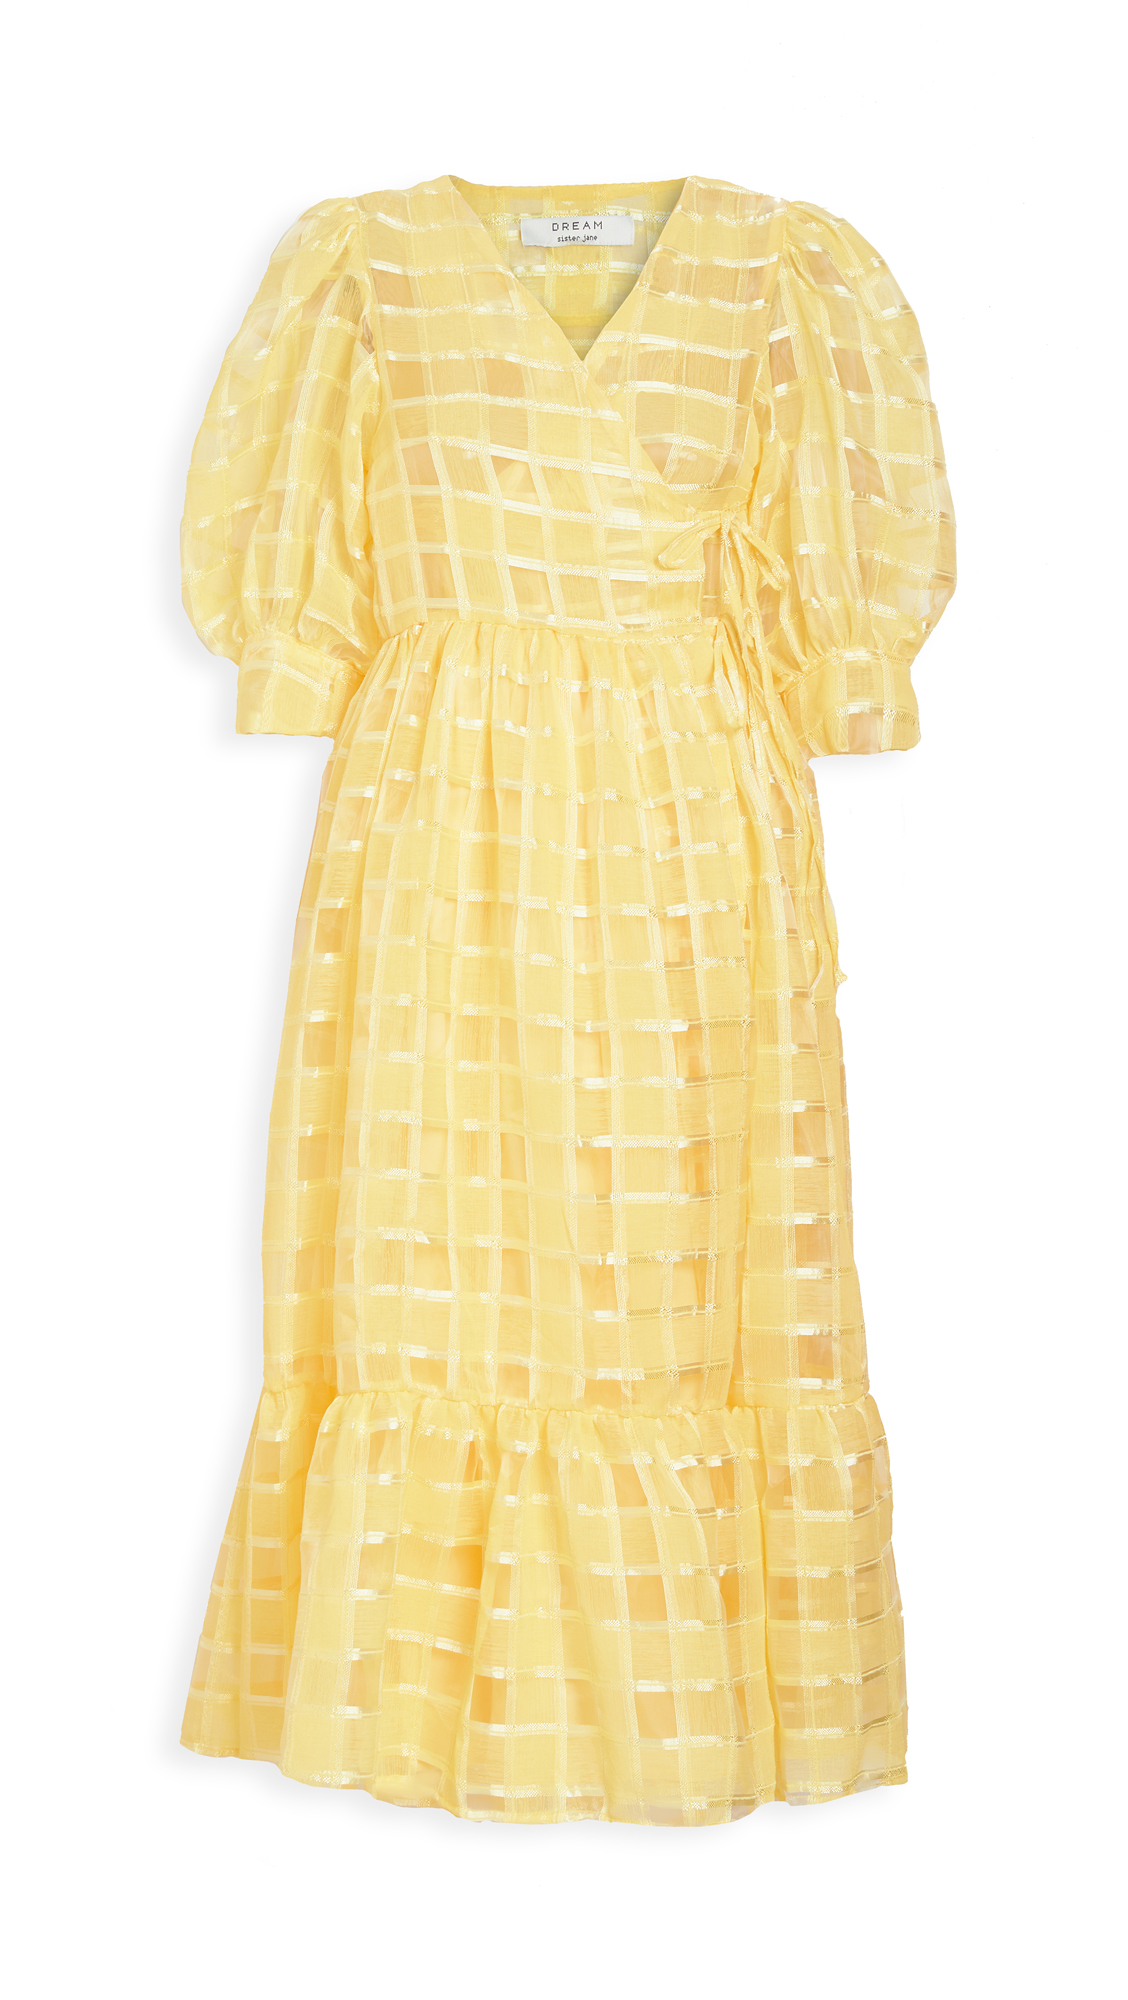 Sister Jane DREAM Sister Jane Dolly Wrap Dress